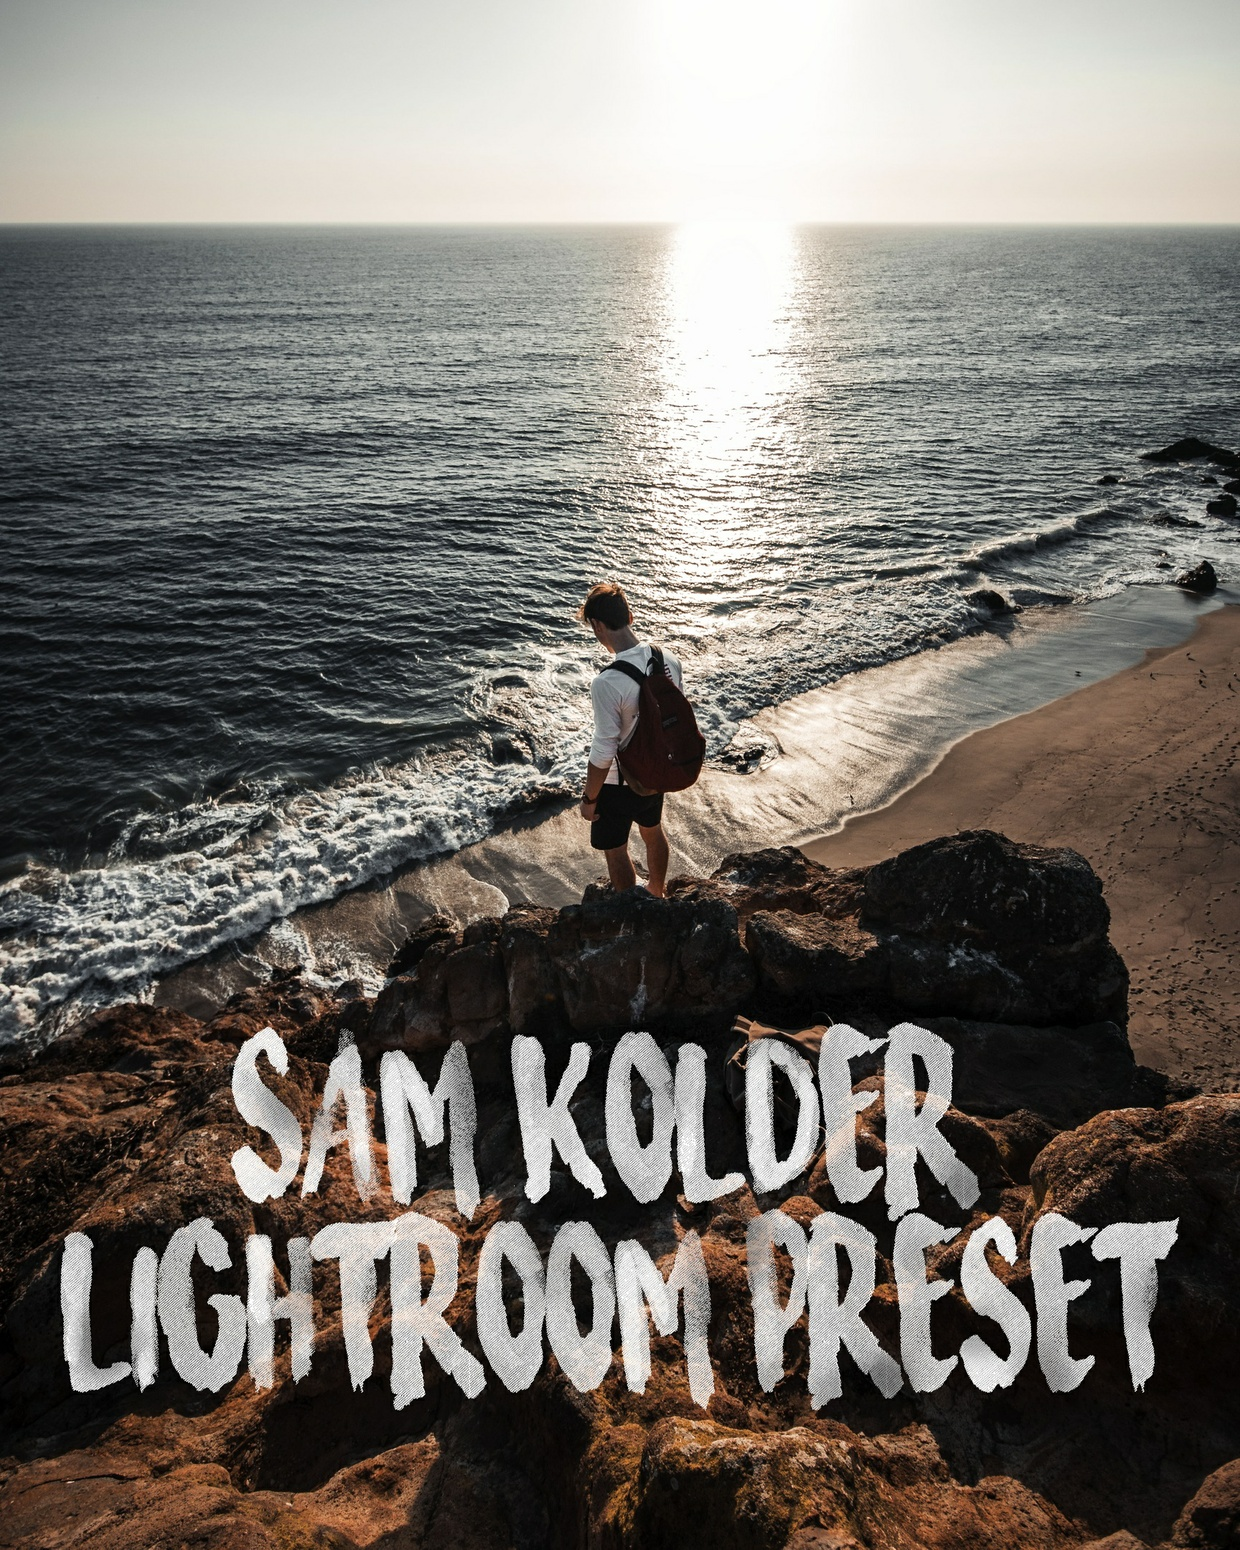 SAM KOLDER LIGHTROOM PRESETS